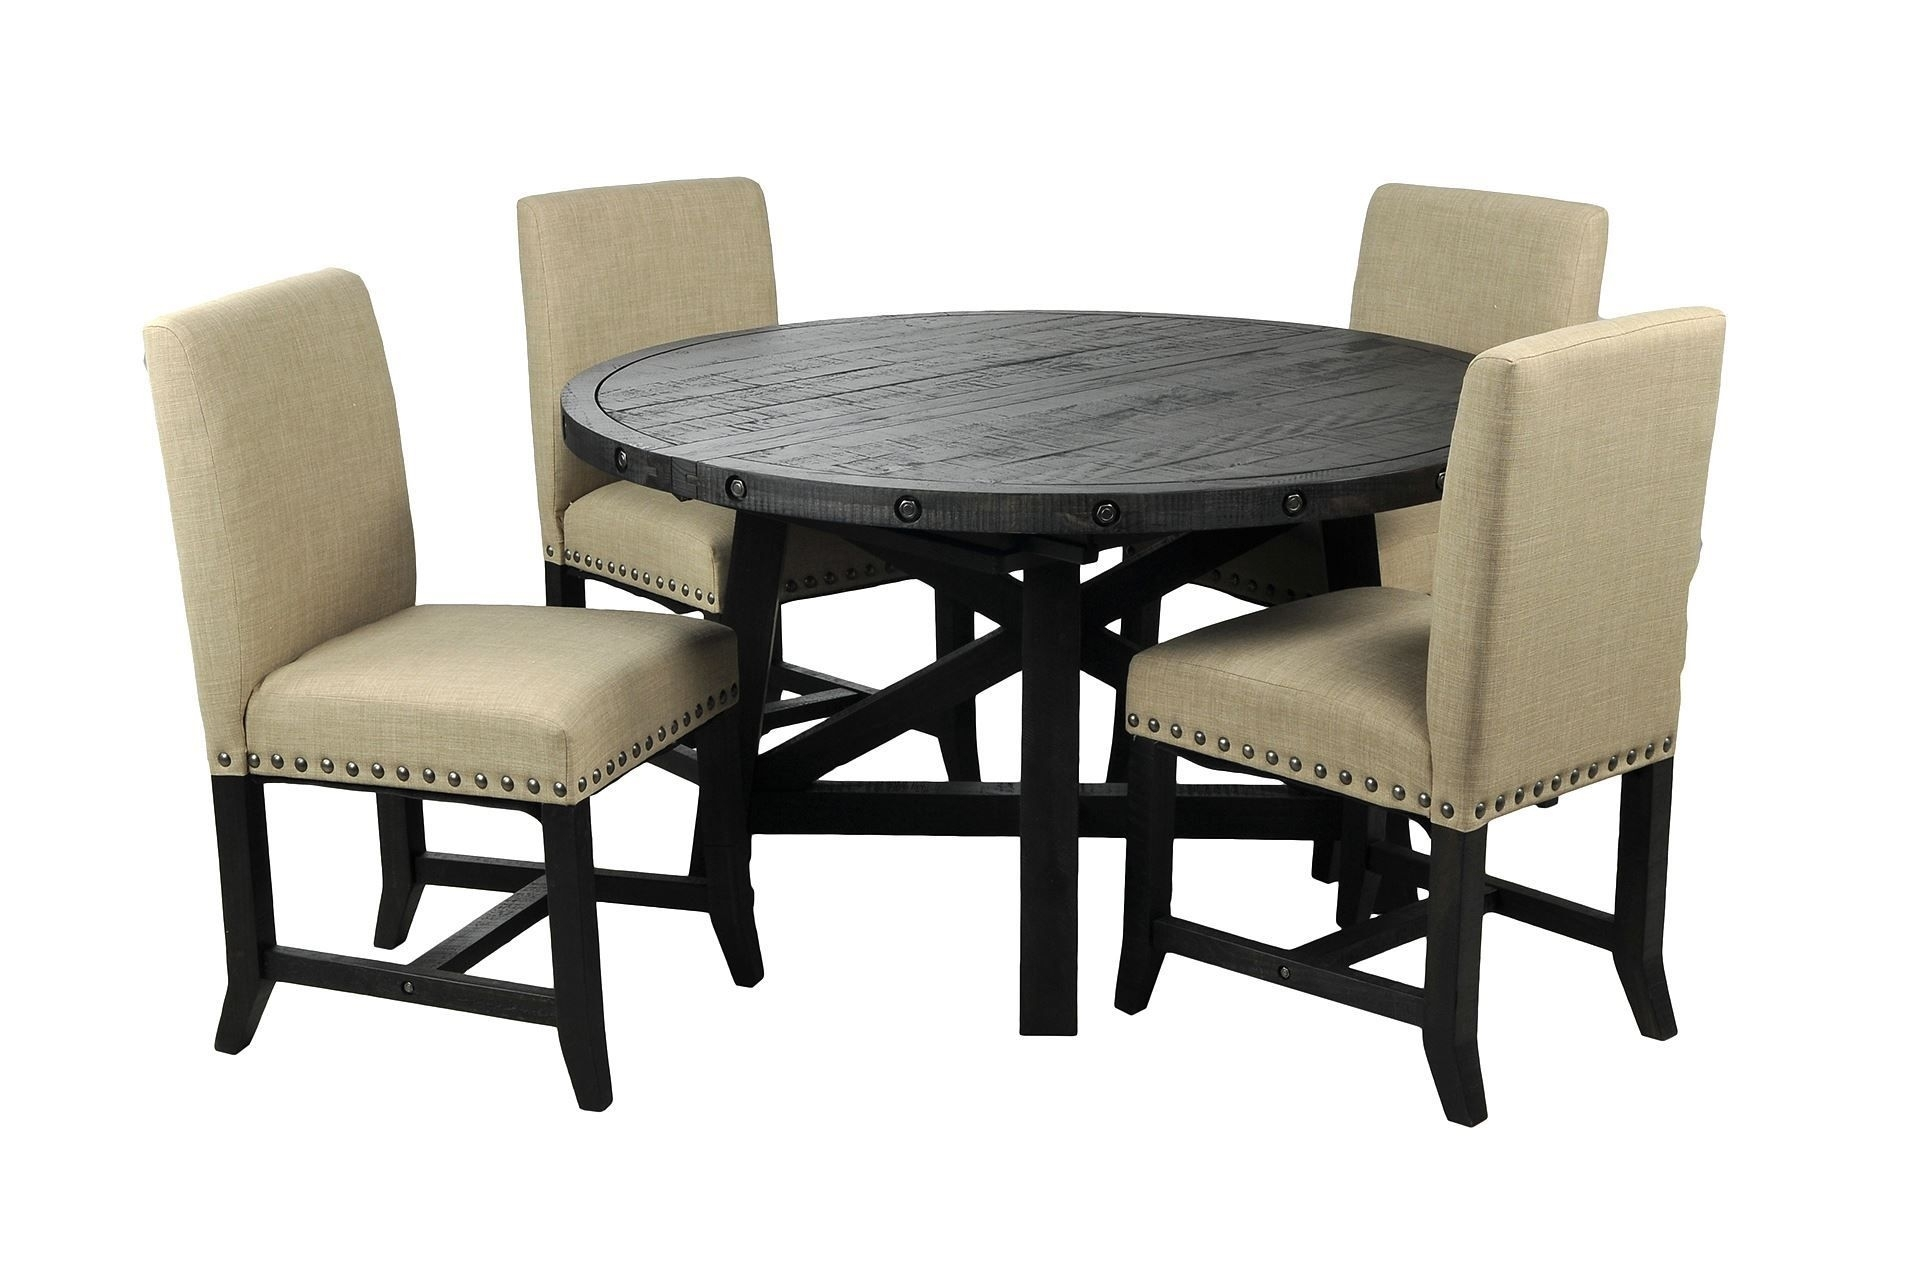 Jaxon 5 Piece Round Dining Set W/upholstered Chairs | Round Table Throughout Best And Newest Jaxon Grey 5 Piece Round Extension Dining Sets With Wood Chairs (Image 11 of 20)